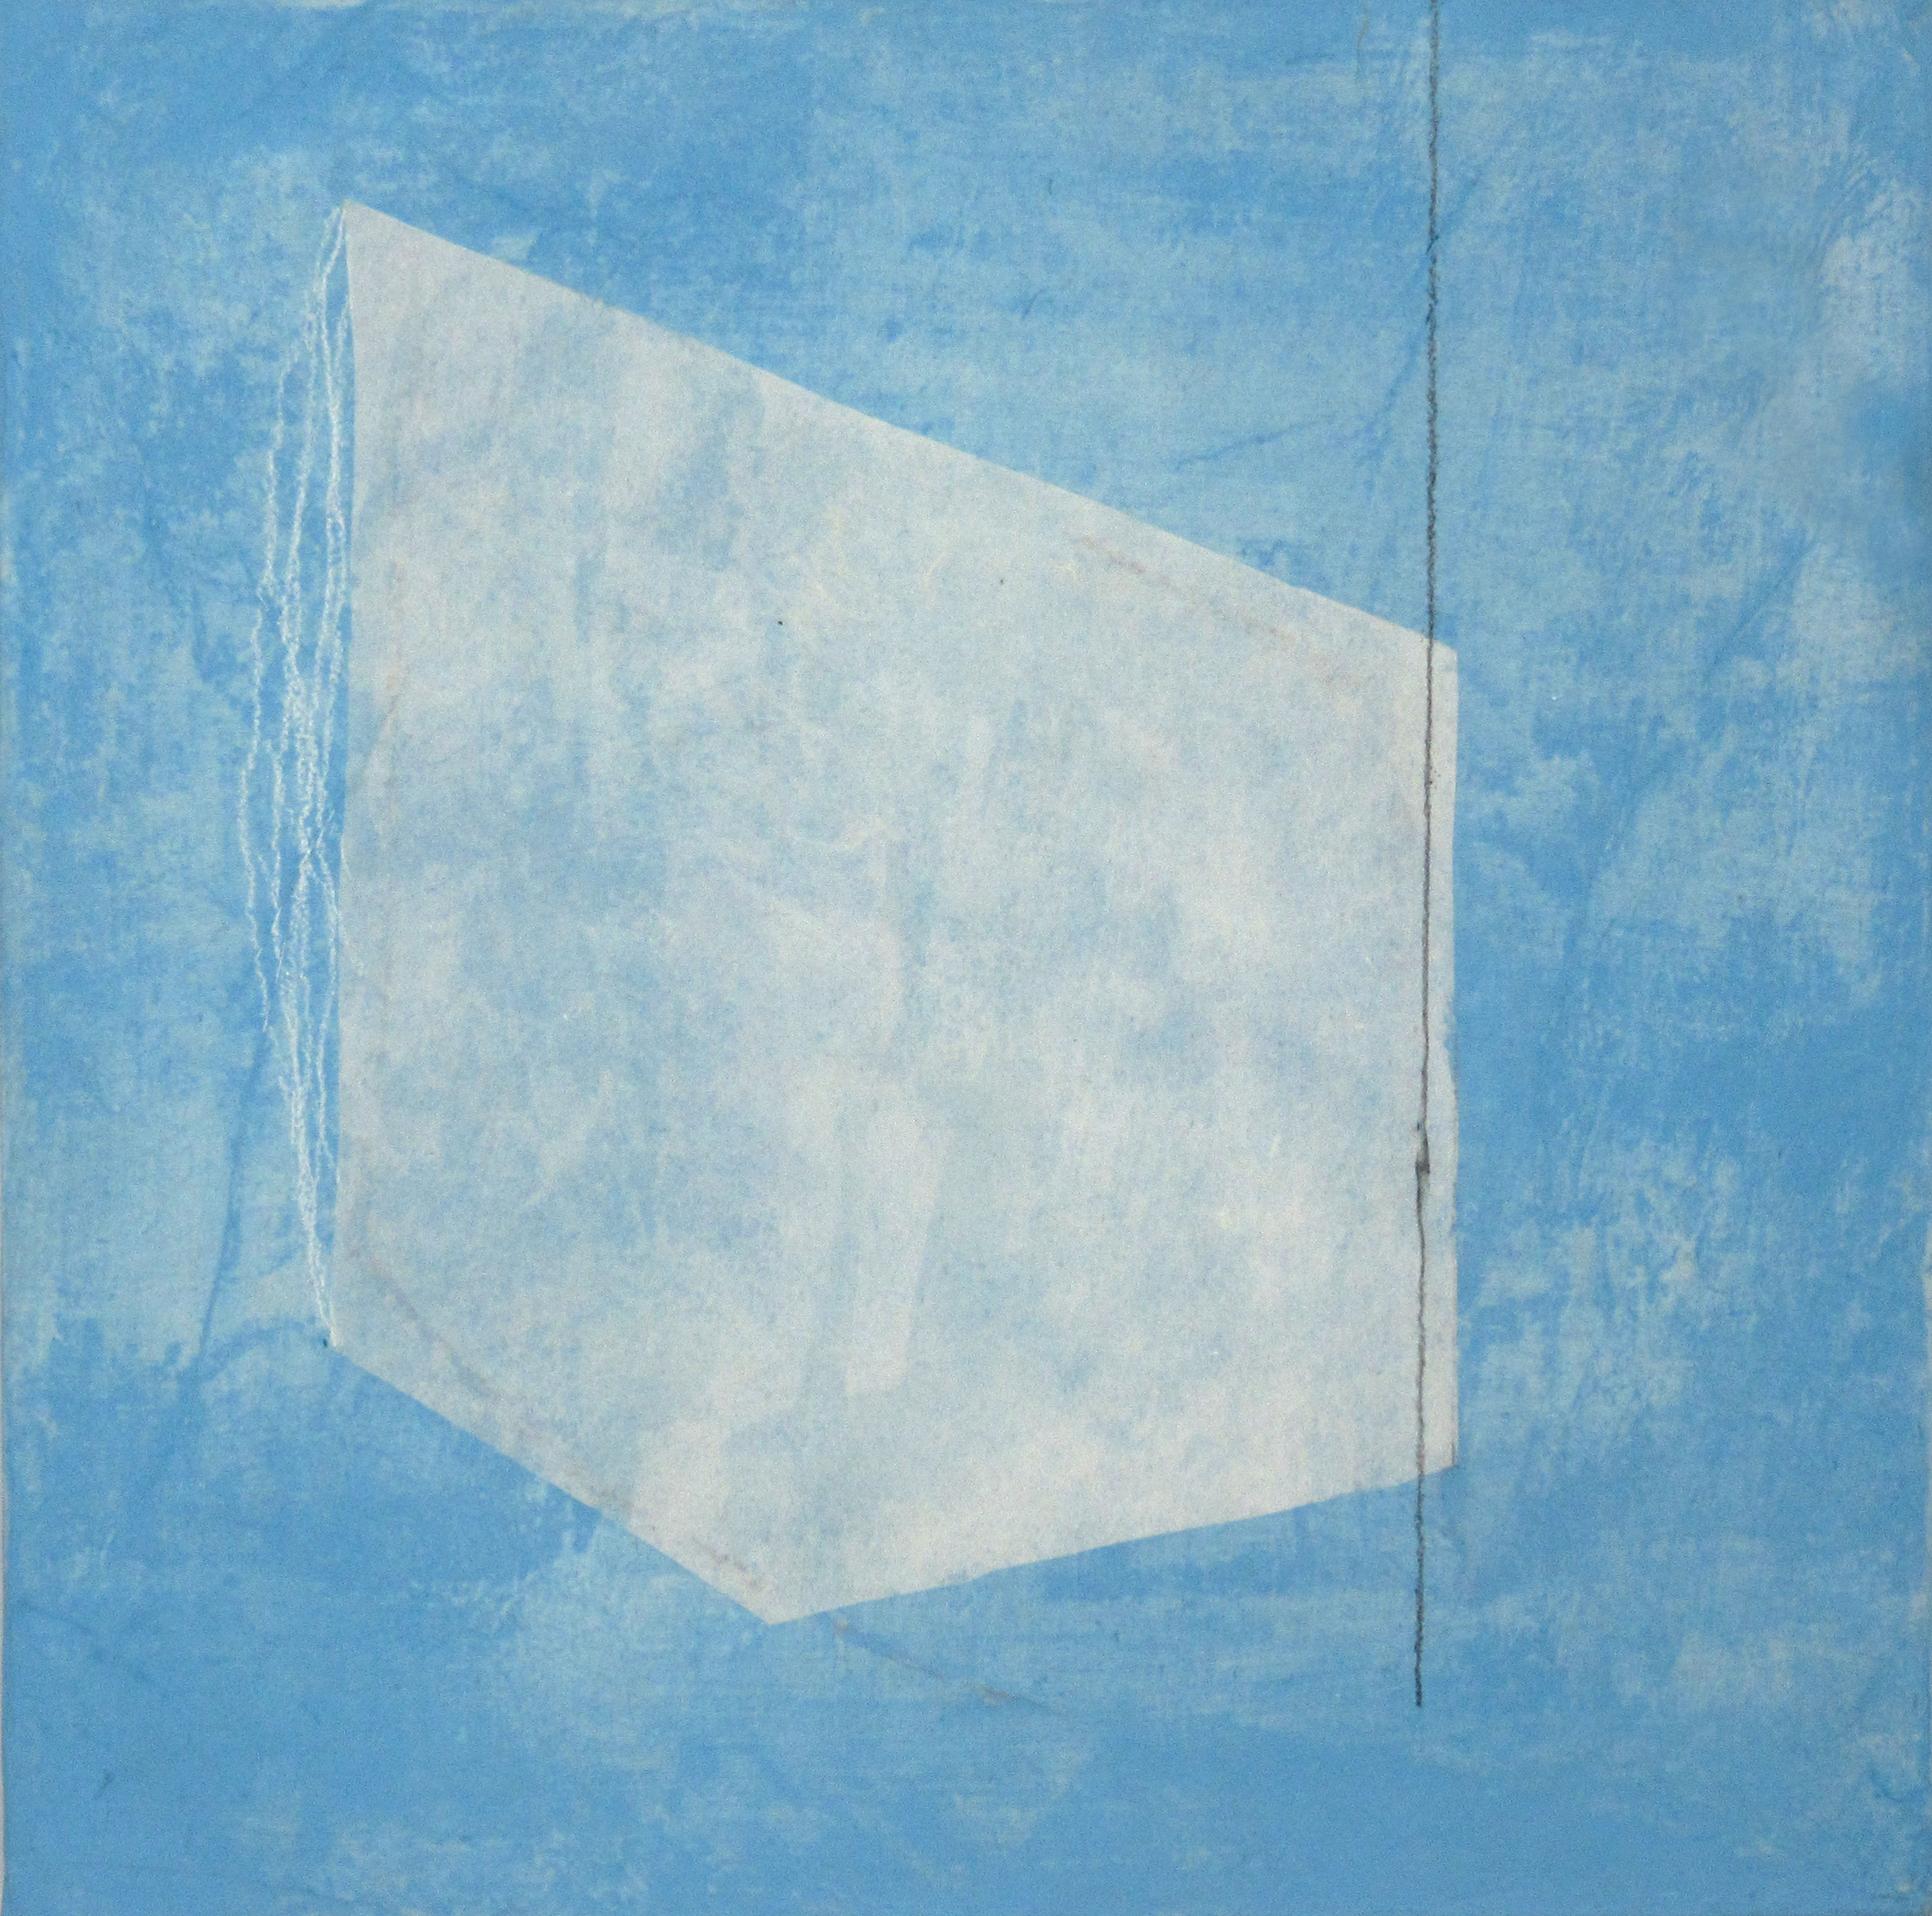 White on Pale Blue with Line, 2019, mixed media on cradled wood, 10 x 10 in, $550